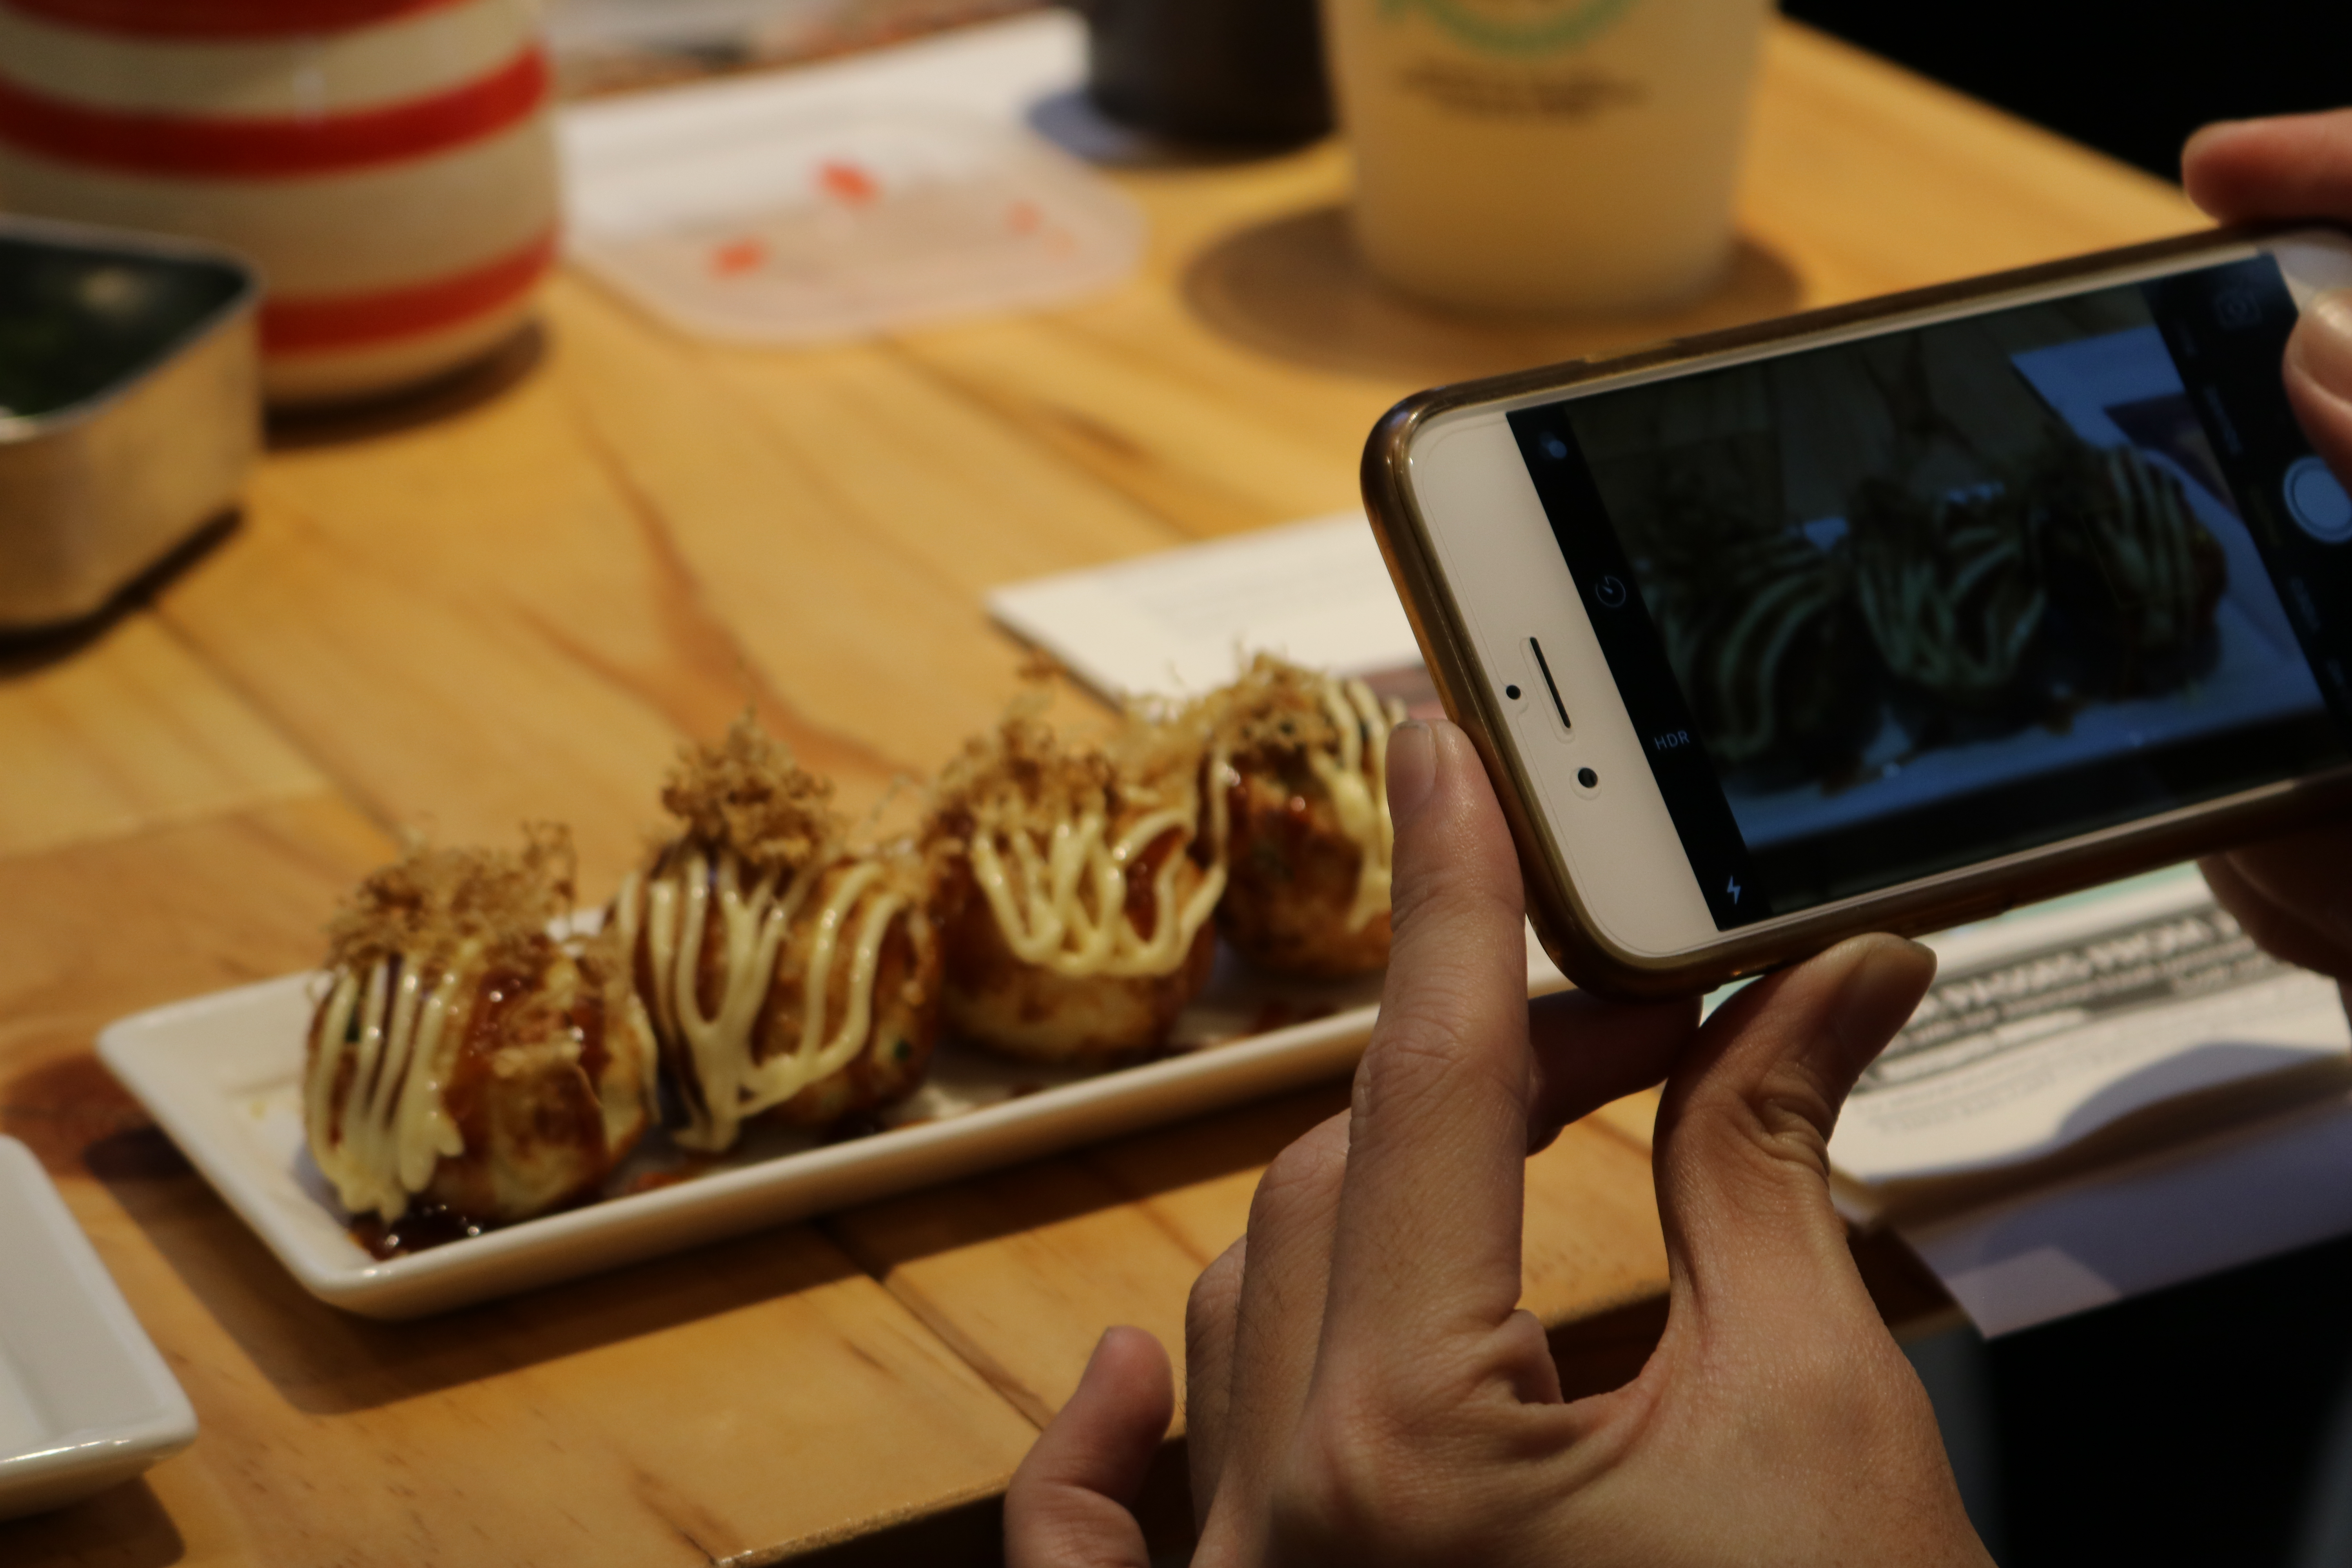 Getting that Instagram-worthy shot of mouthwatering takoyaki!